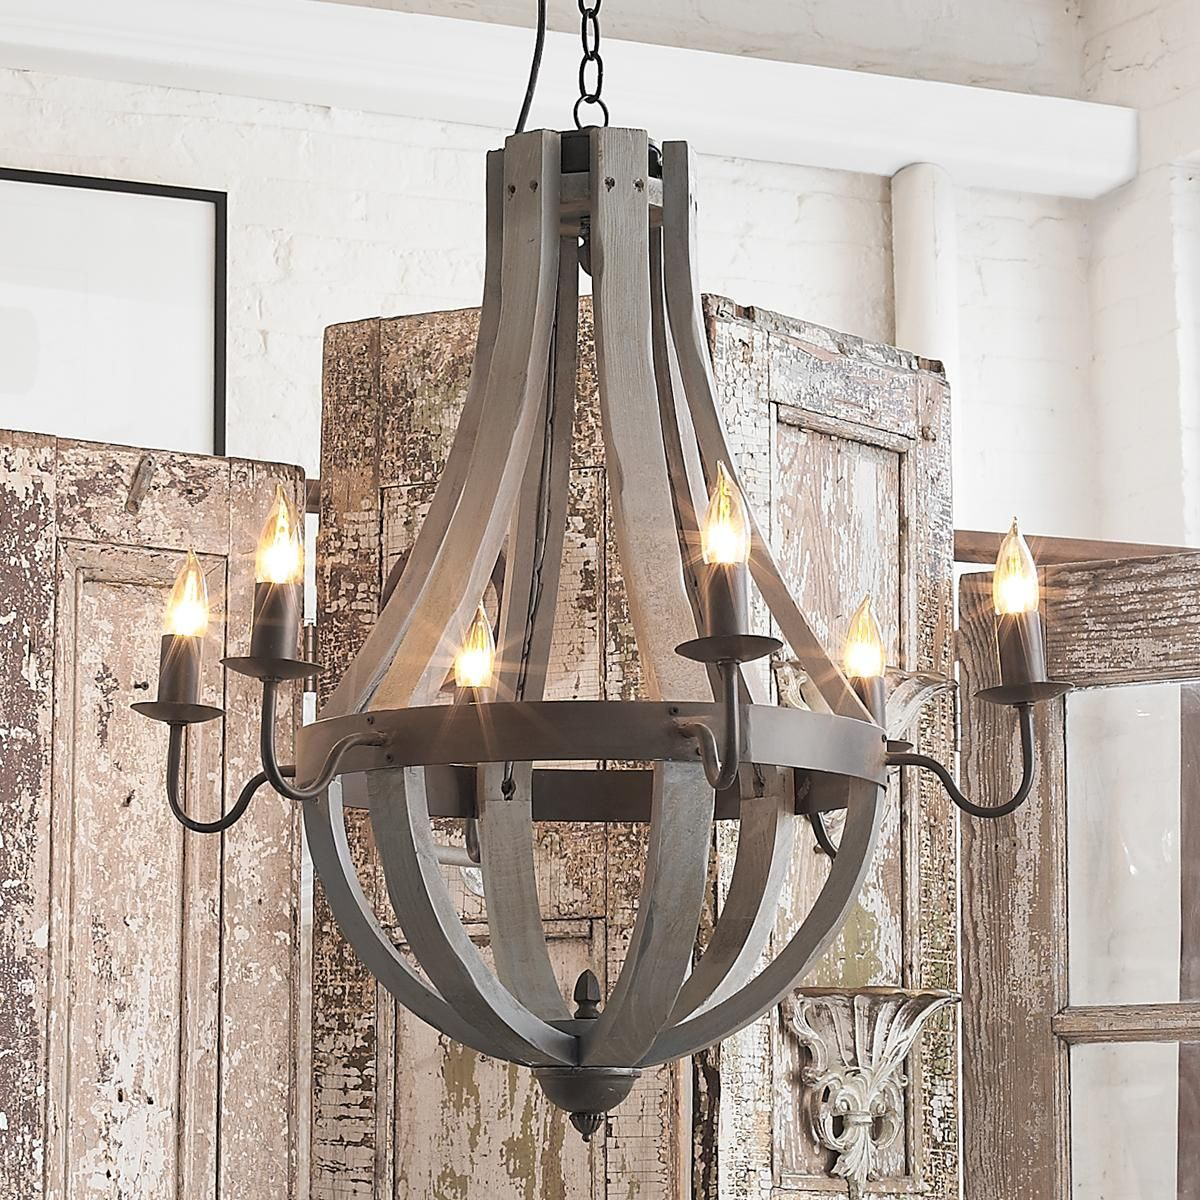 Wooden wine barrel stave chandelier pinterest wine barrel wooden wine barrel stave chandelier inspired by wooden slats from the vineyard this bent wood wine barrel chandelier is strapped with a dark bronze metal aloadofball Gallery